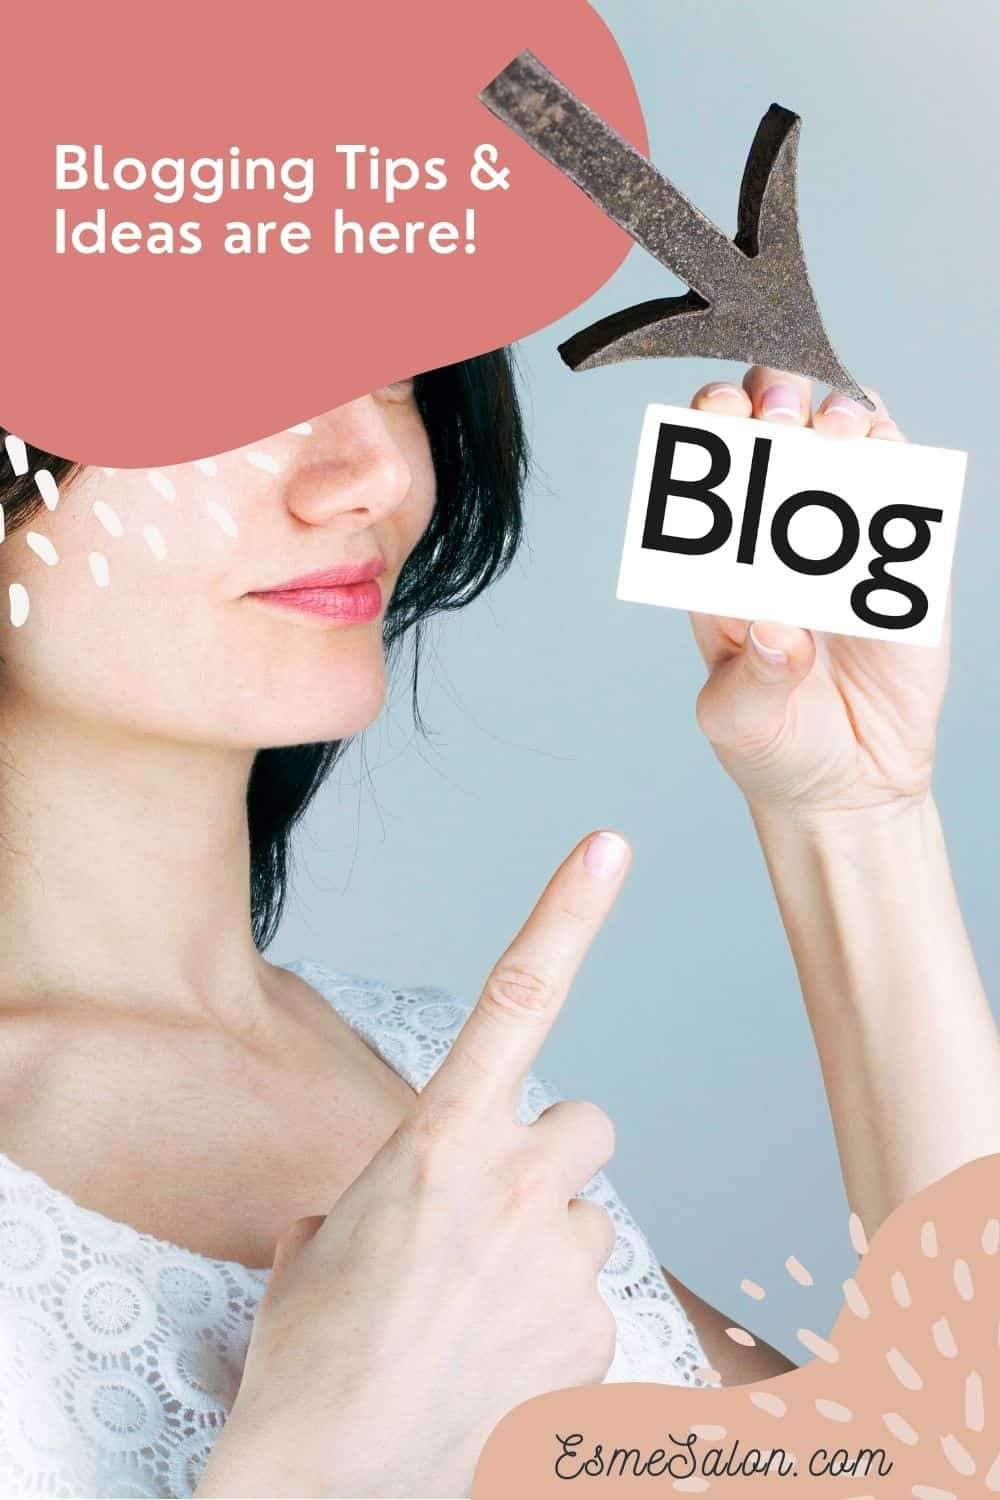 Lady pointing a finger at a BLOG sign